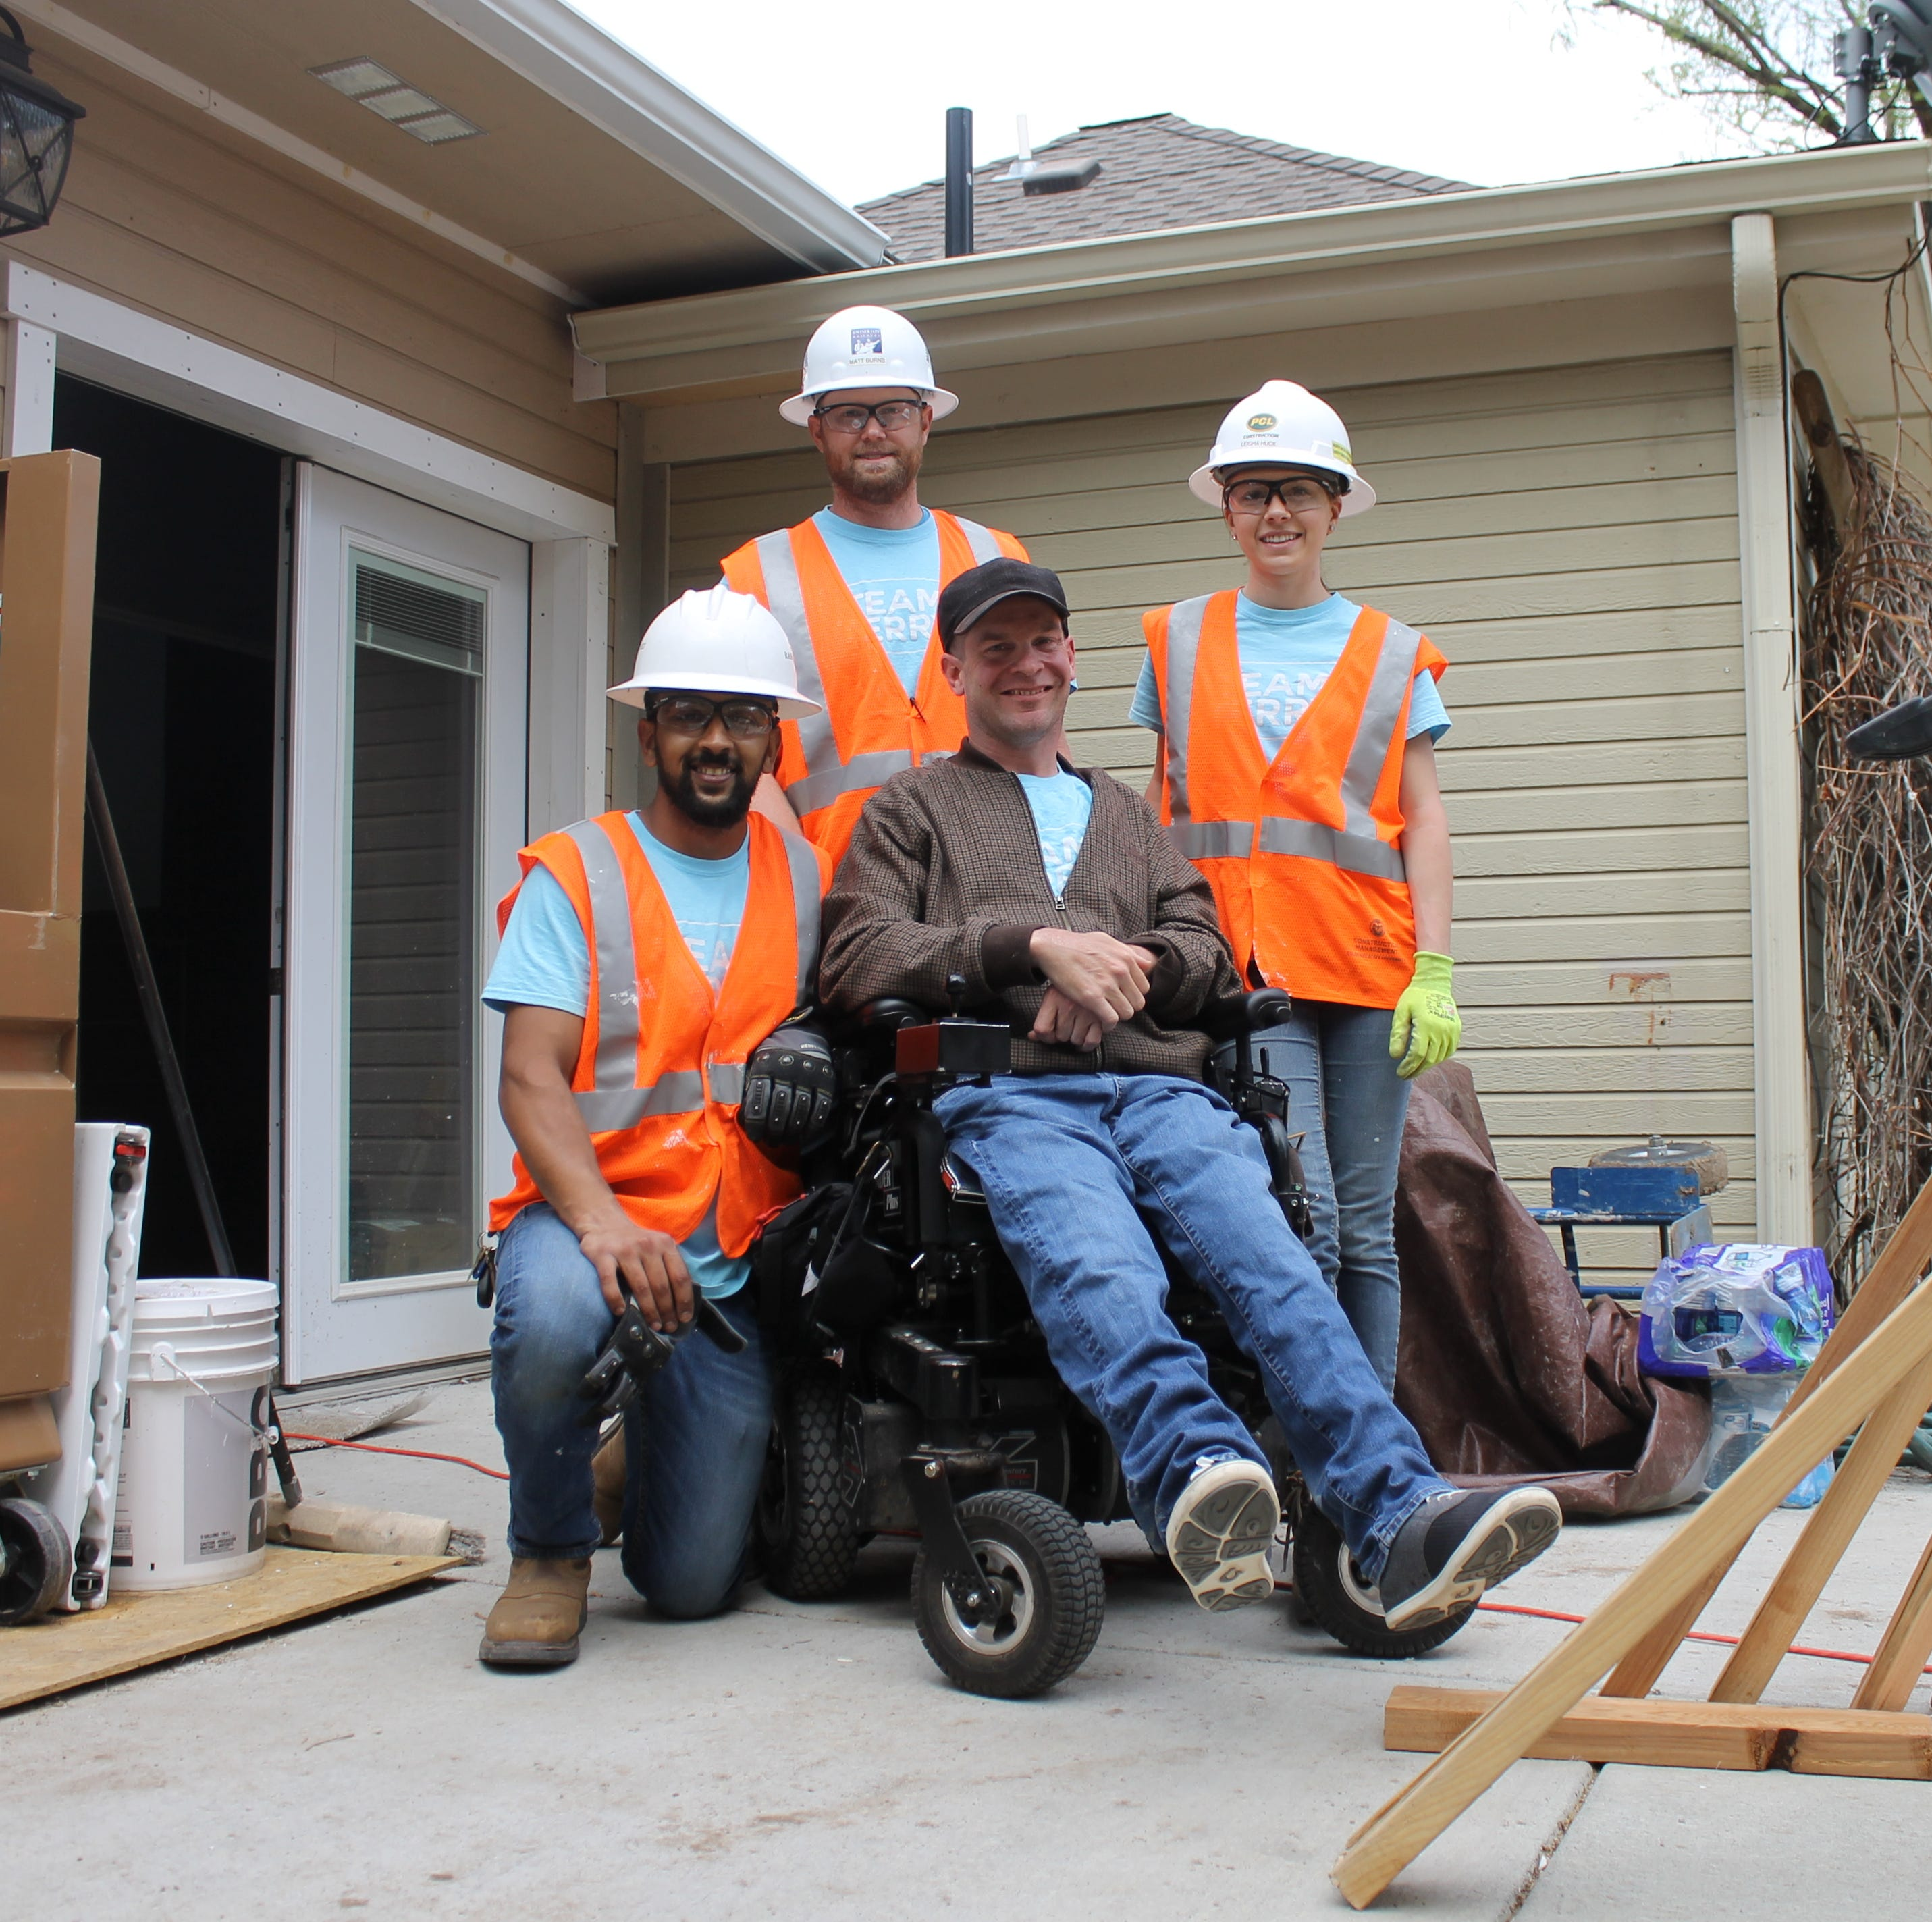 This CSU program helps make buildings more accessible for folks with disabilities